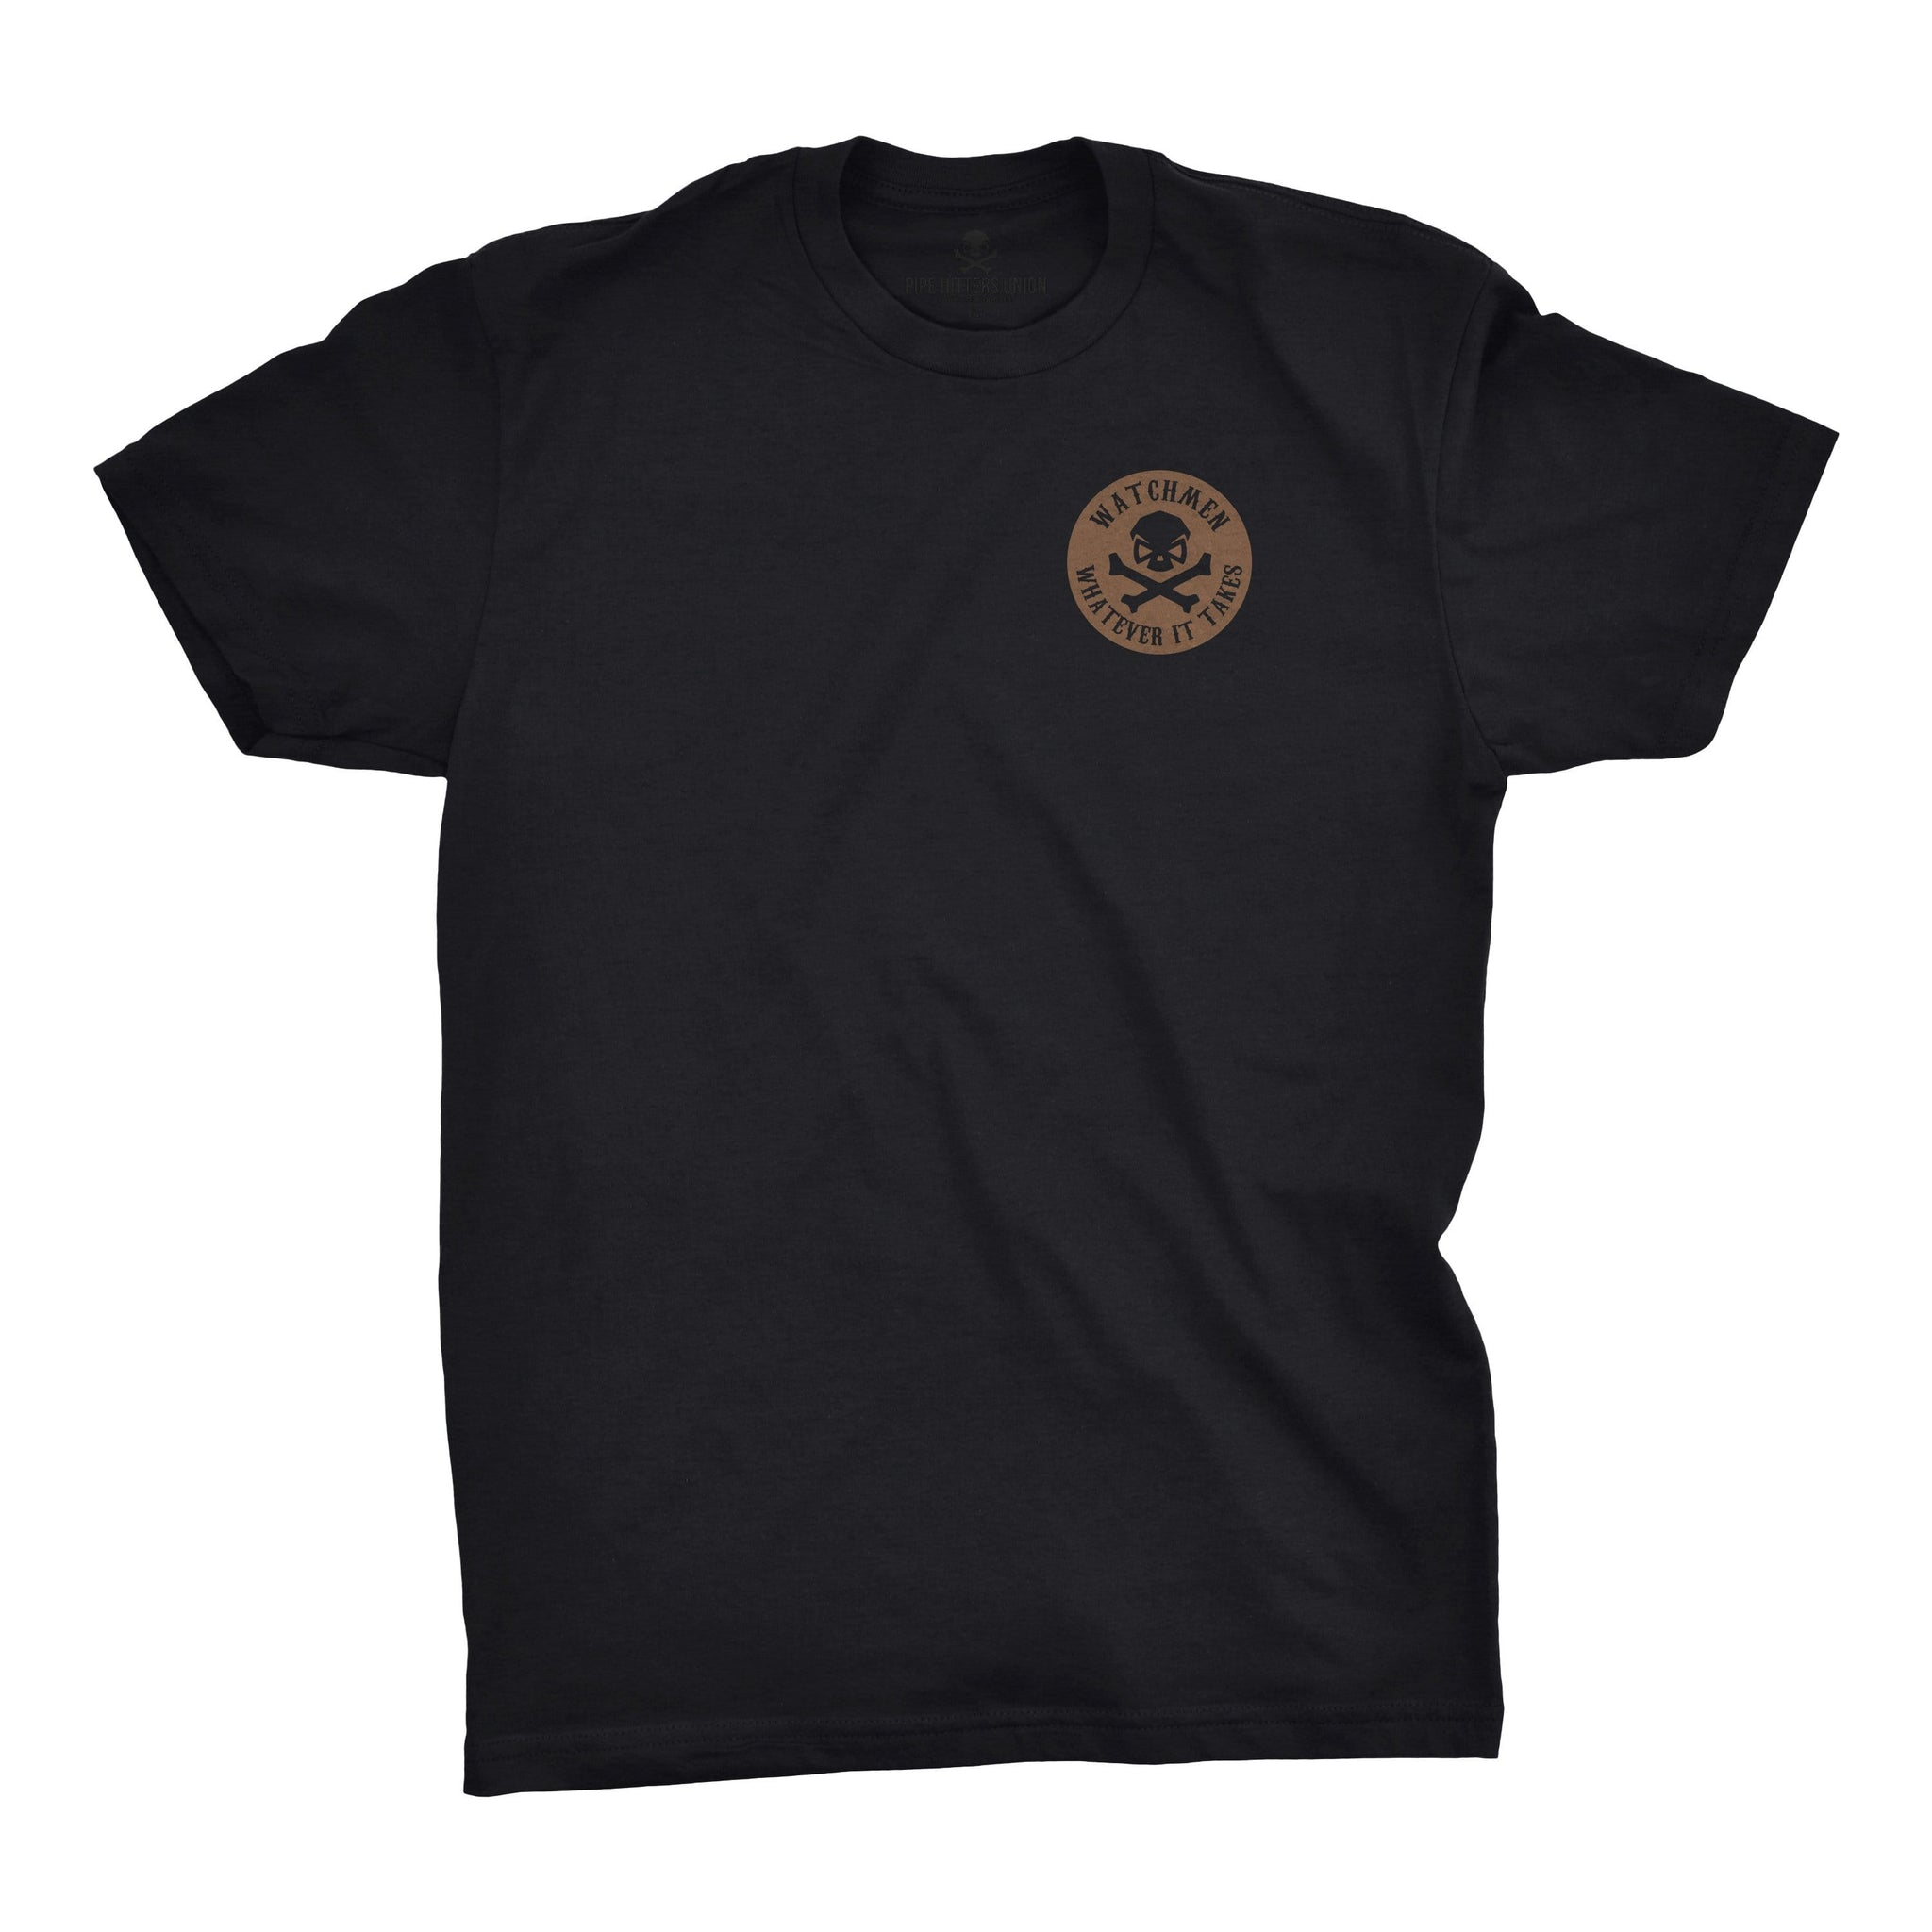 PHUMC Watchmen Chapter Tee - Black - T-Shirts - Pipe Hitters Union